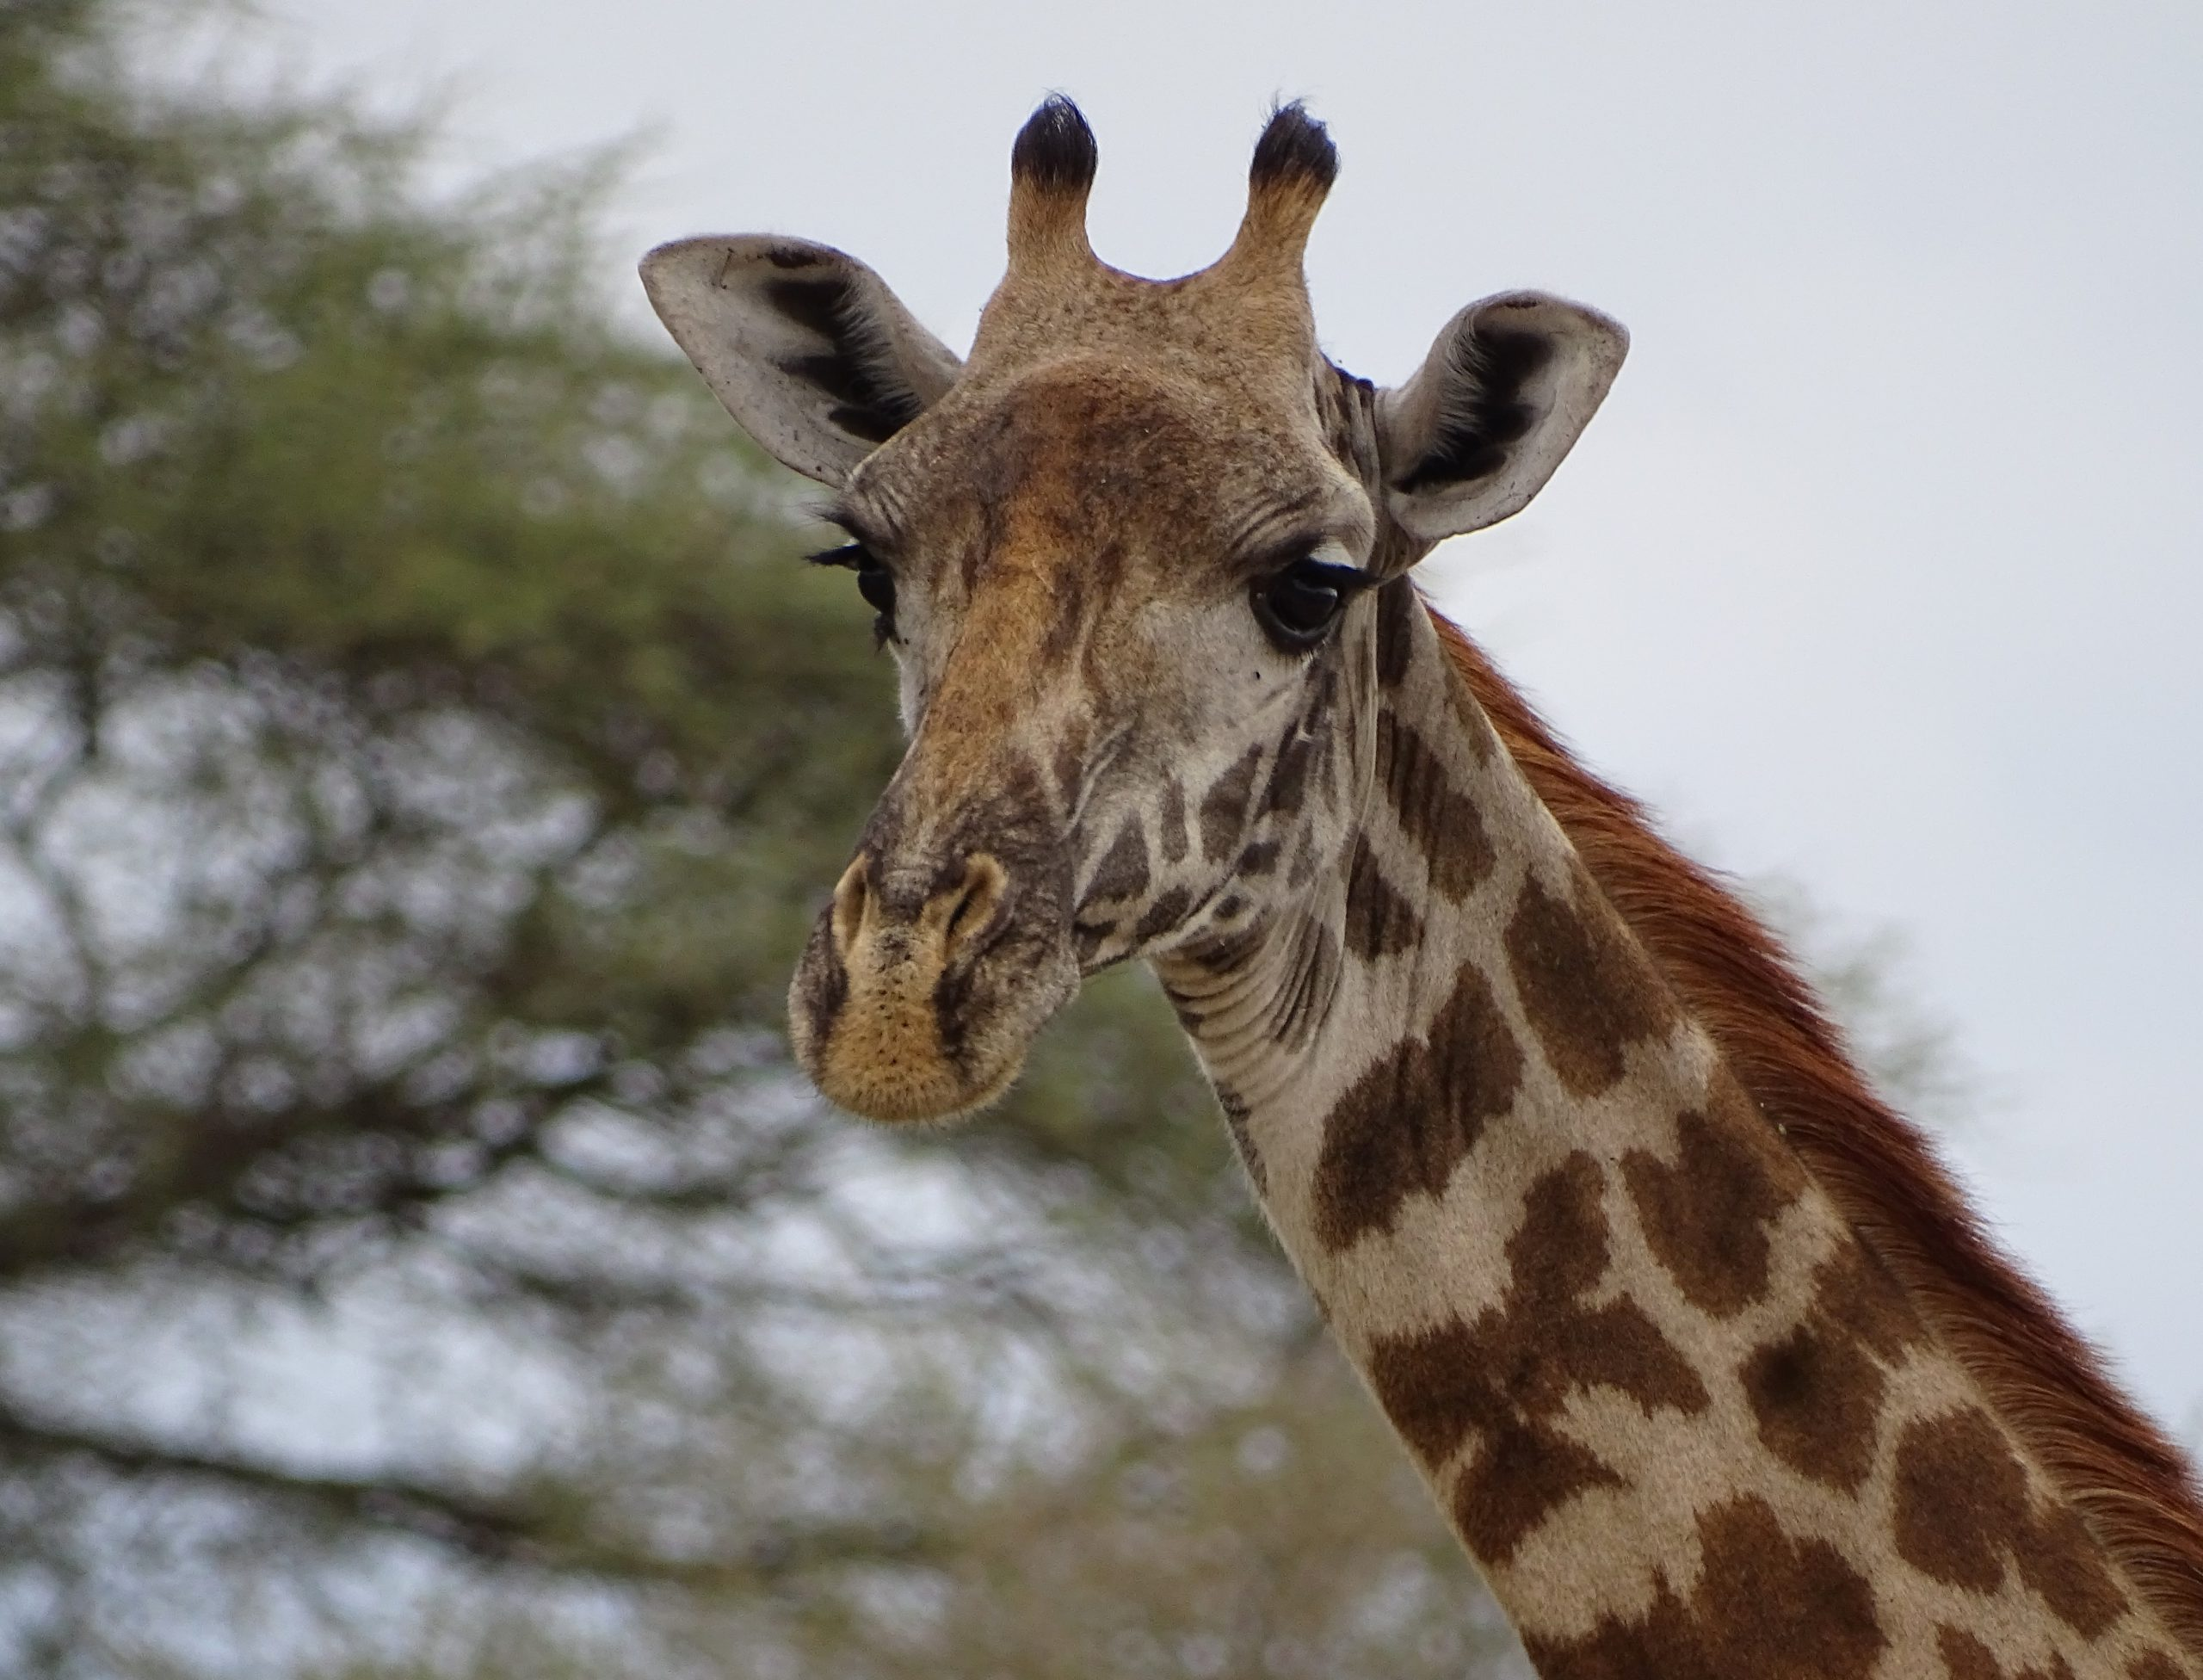 school_expedition_tanzania_trek_giraffe_on_safari